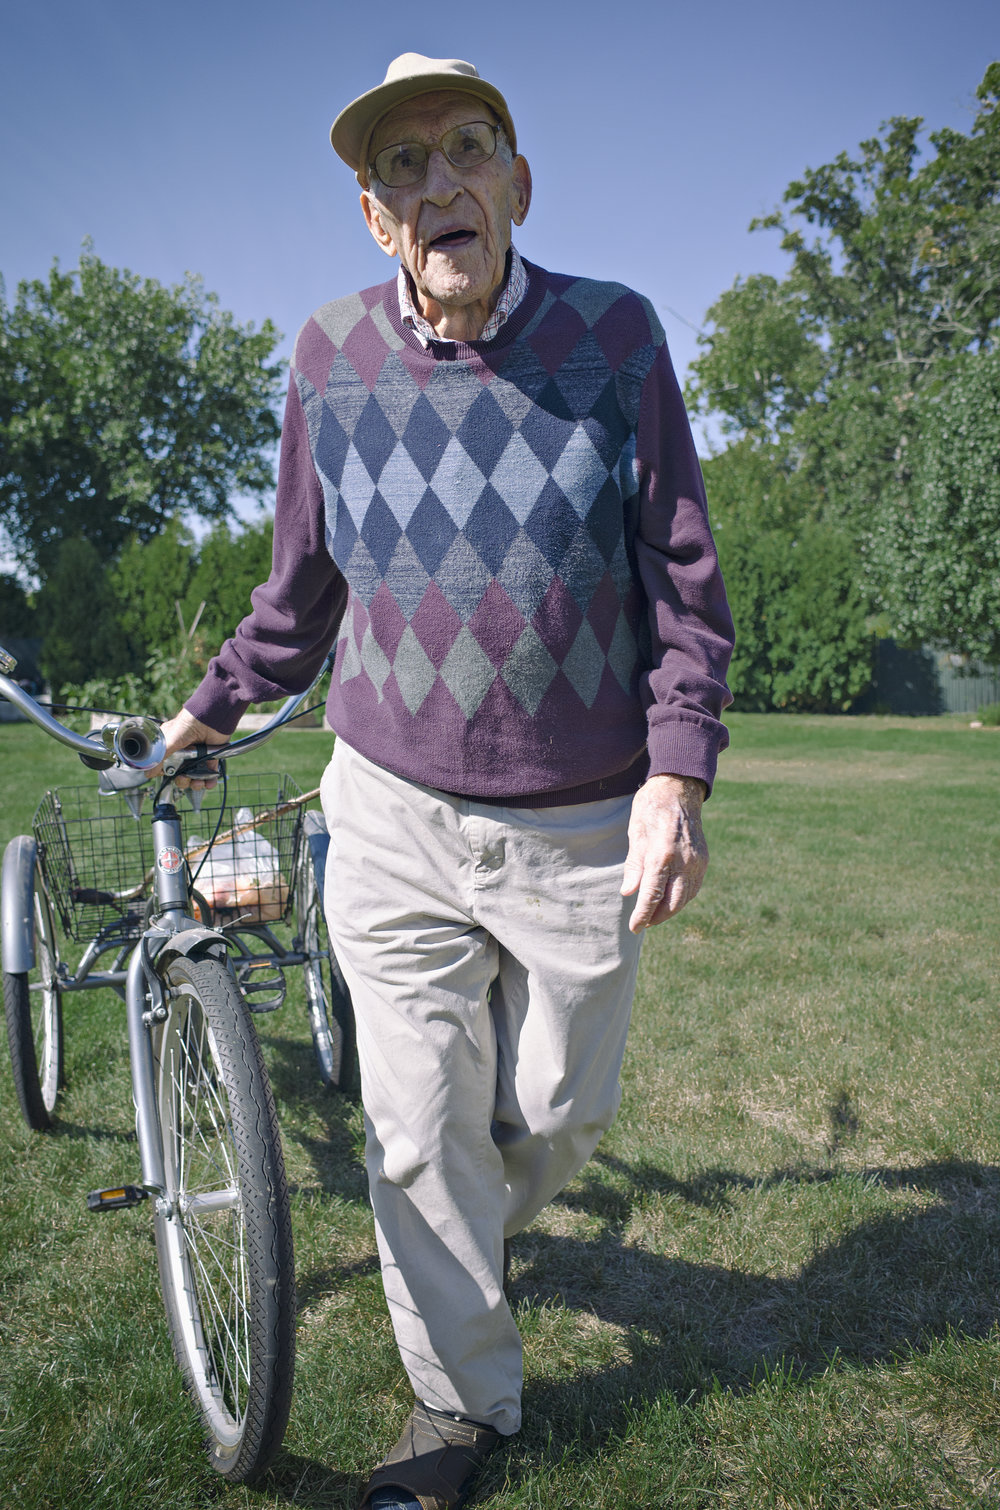 Here's my grandpa- 94 years young and still riding a bike.